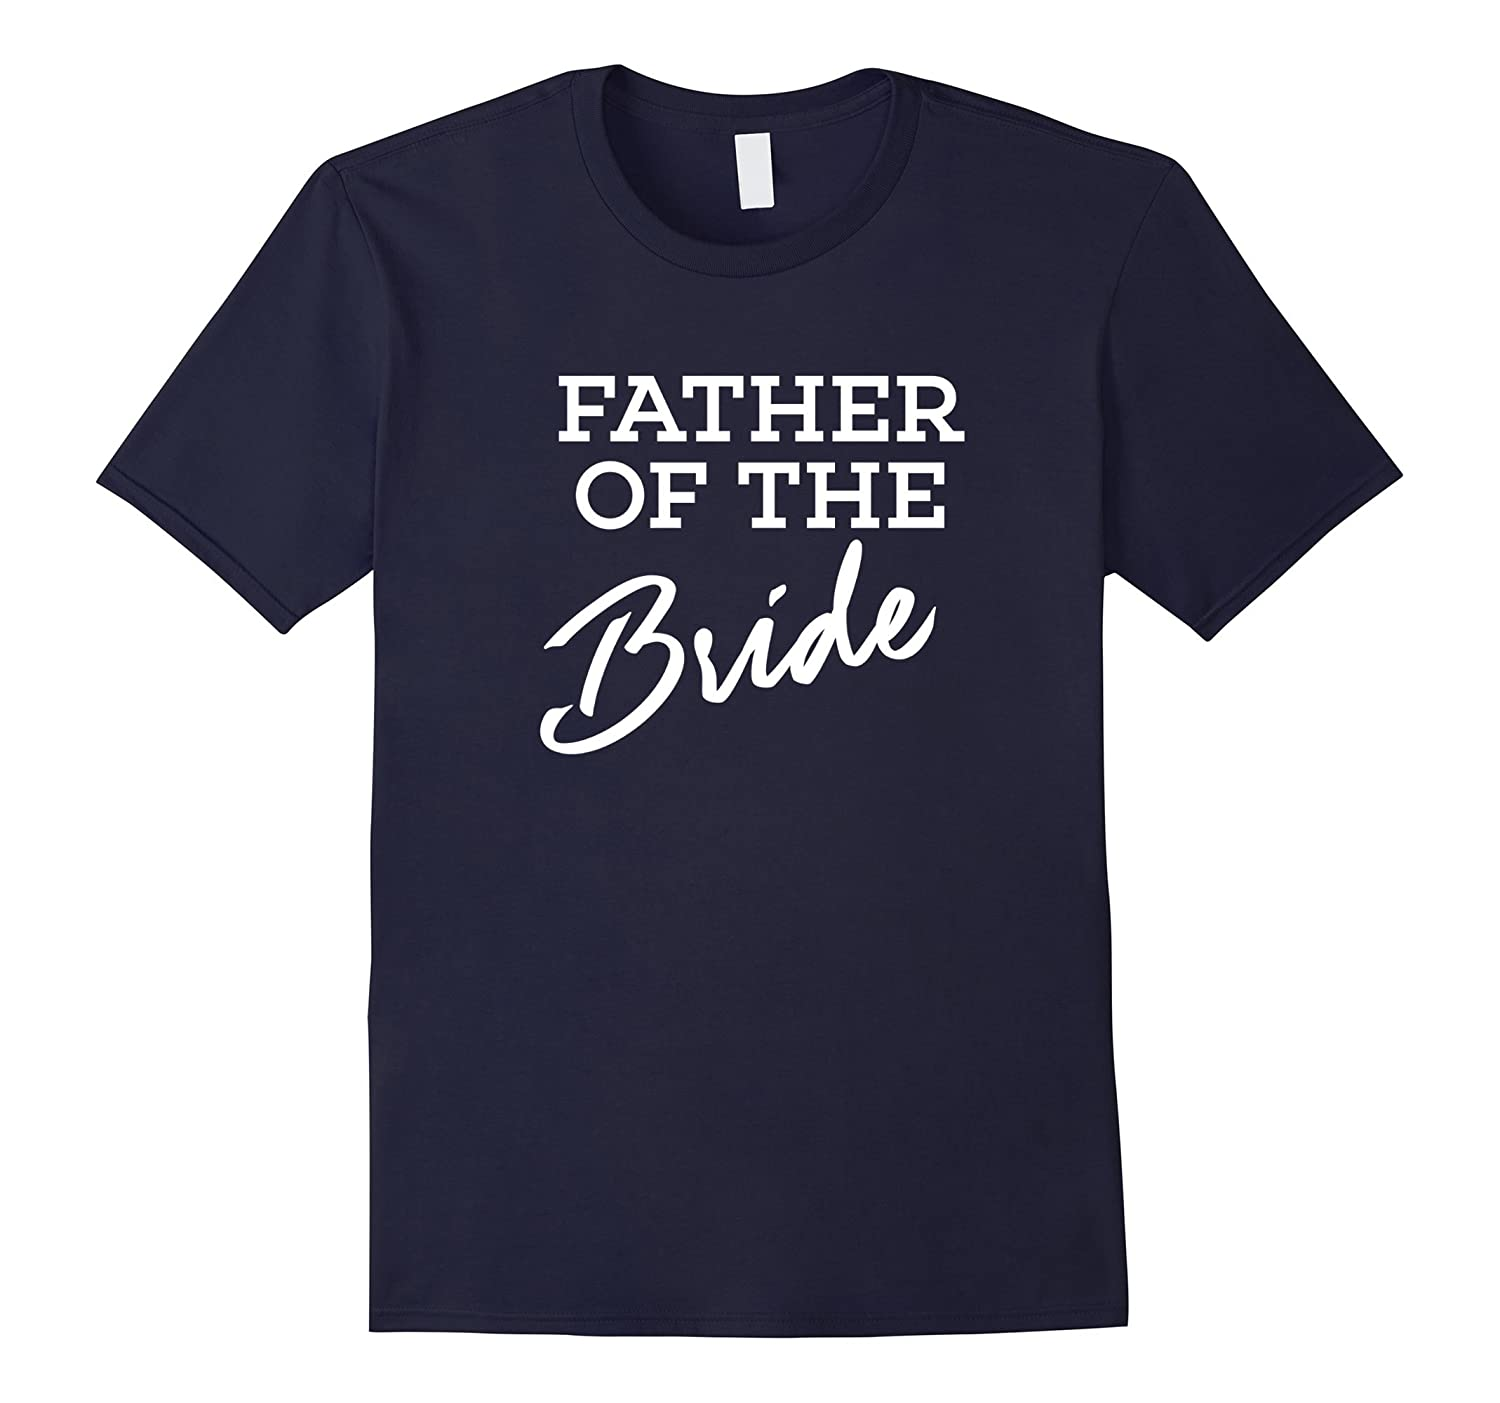 Father of the Bride - Wedding Bridal Party T Shirt for Dad-TH